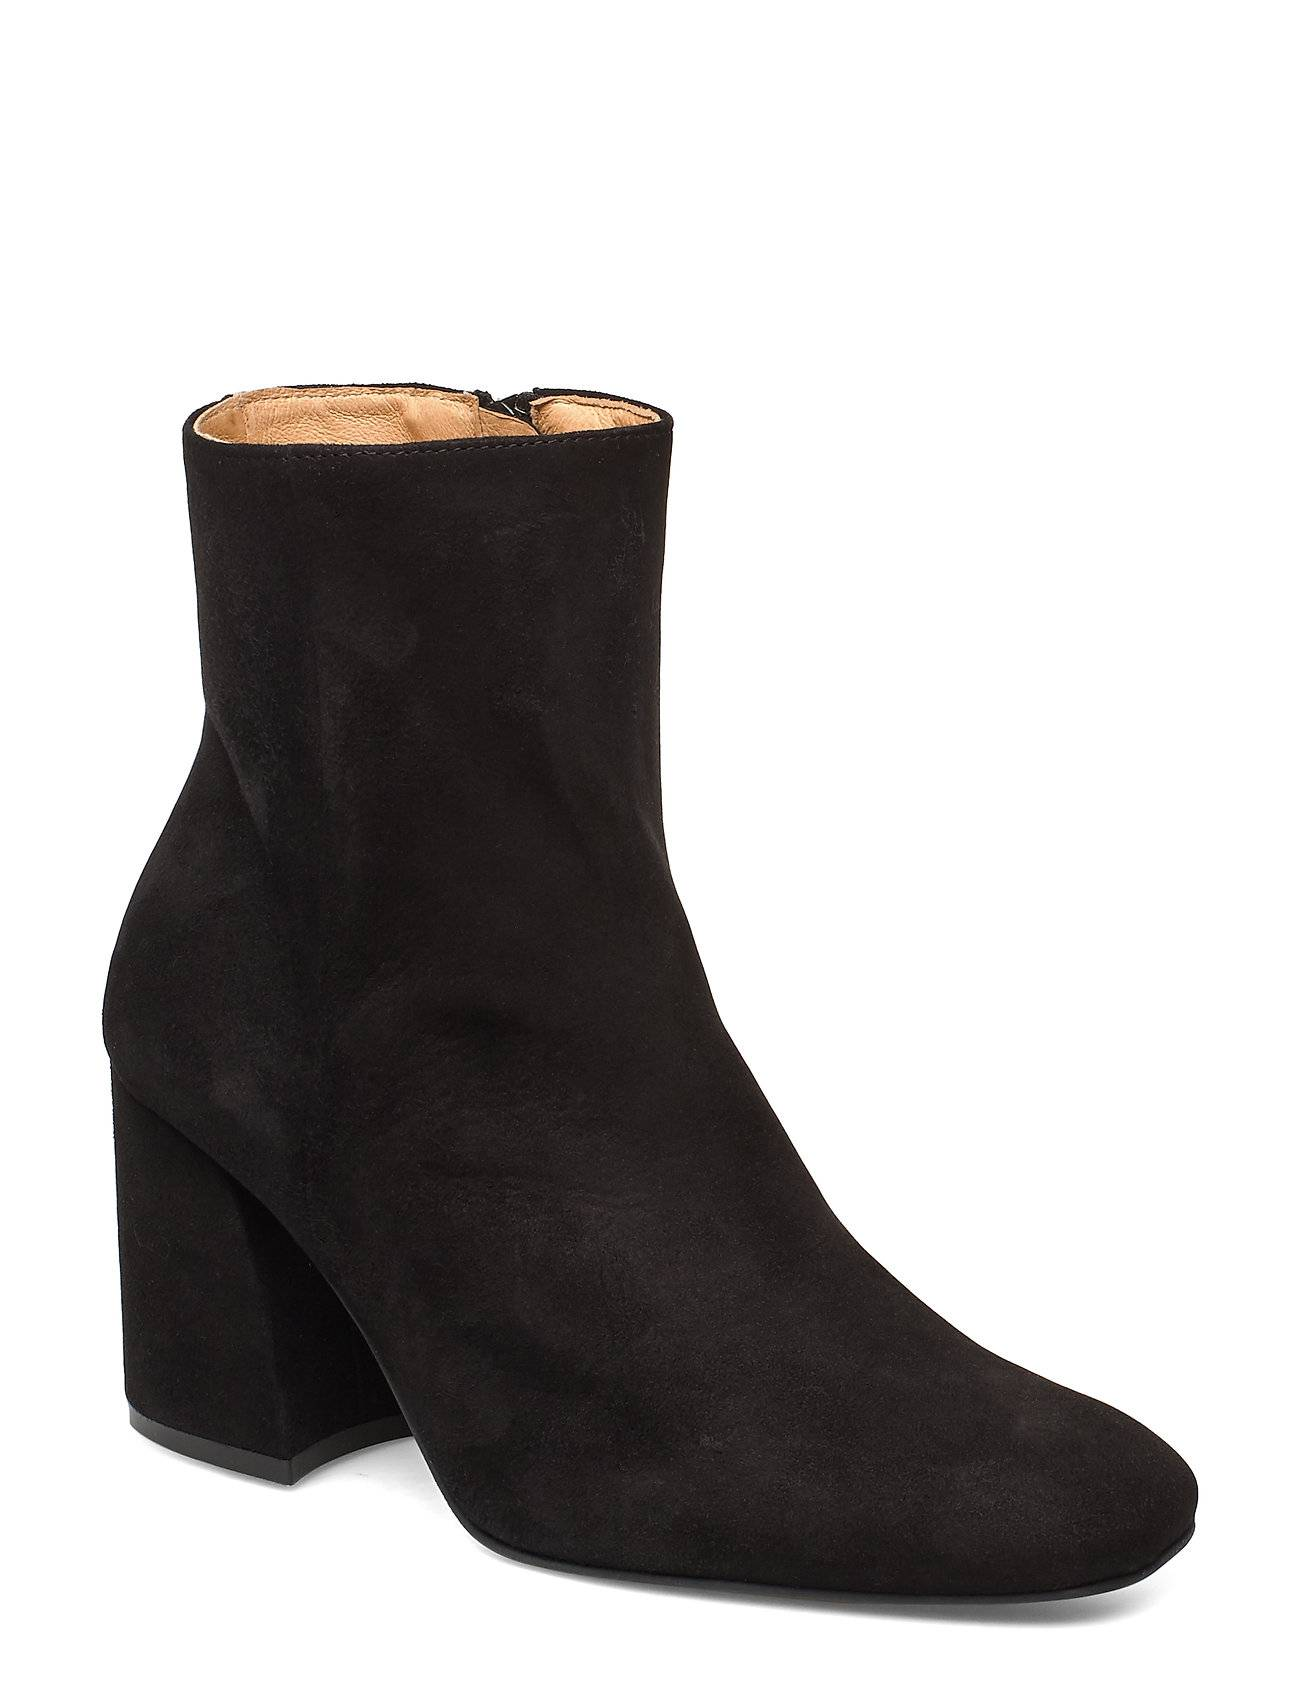 ANNY NORD Ms Steinem Shoes Boots Ankle Boots Ankle Boot - Heel Musta ANNY NORD